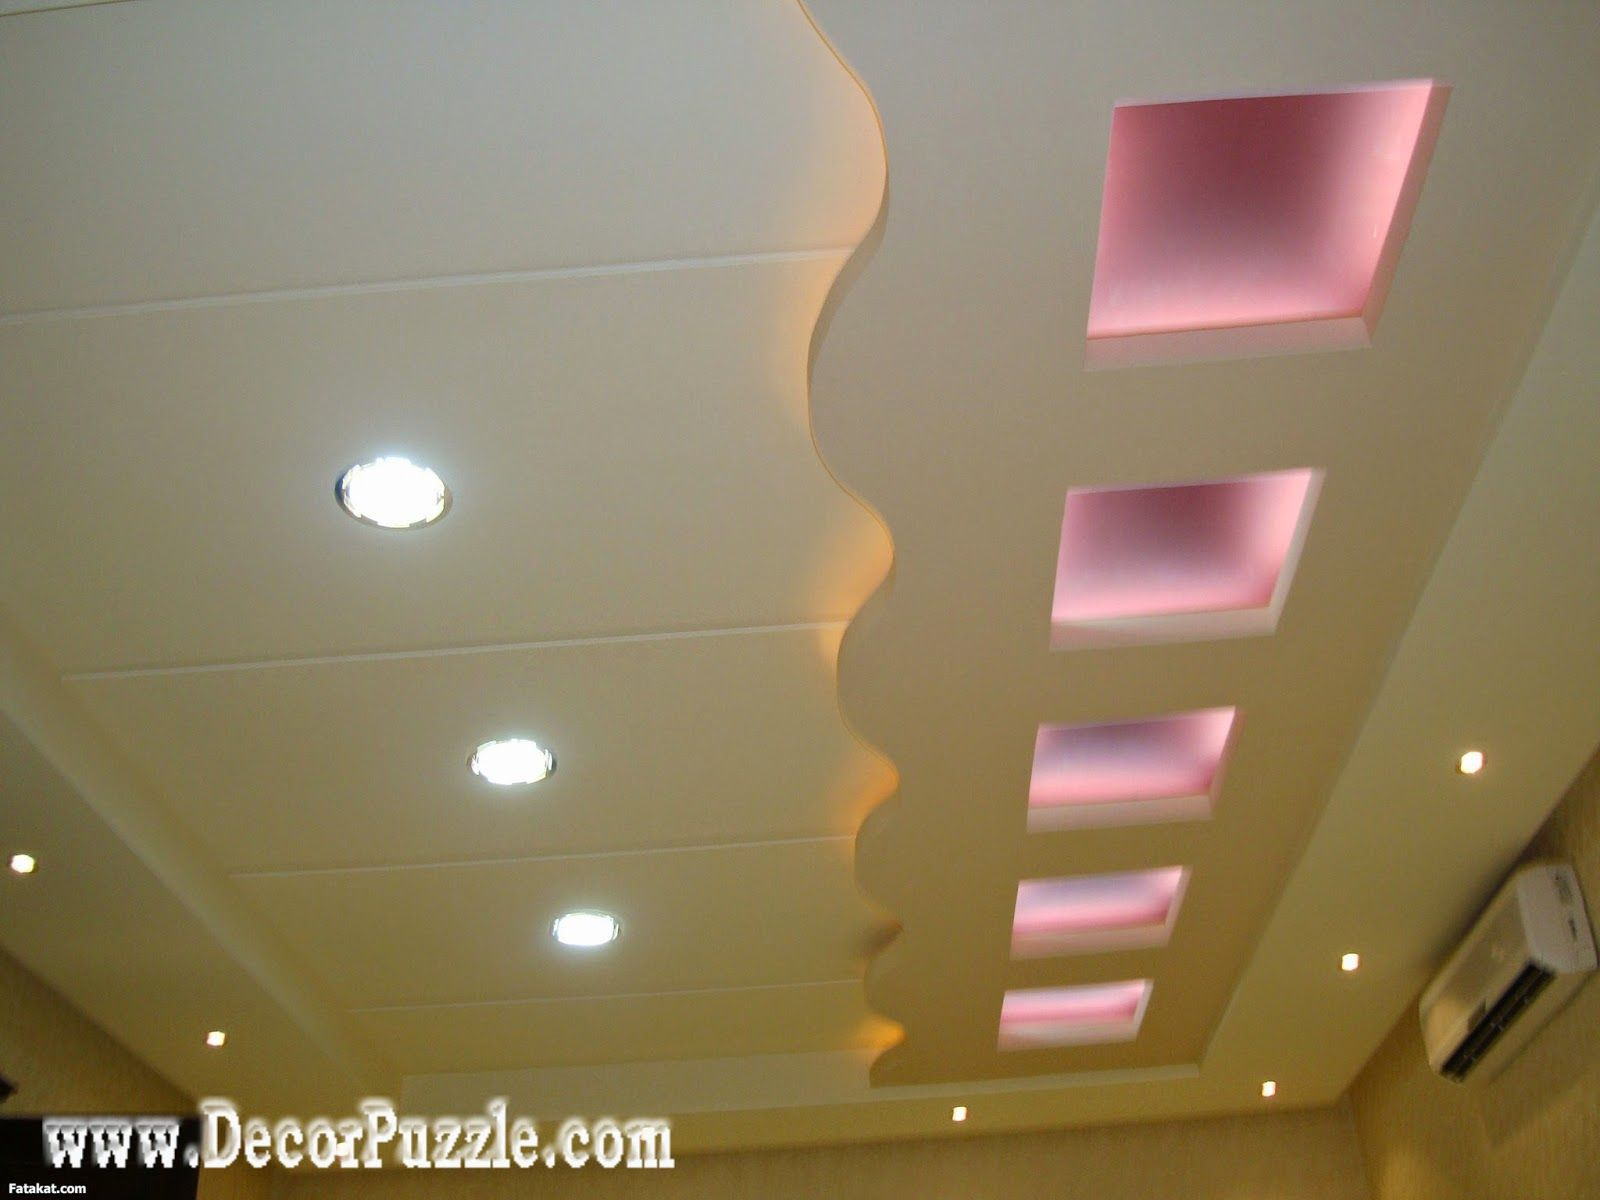 Contemporary False Ceiling Design For Living Room Plasterboard Ceiling Ziyaret Edilecek